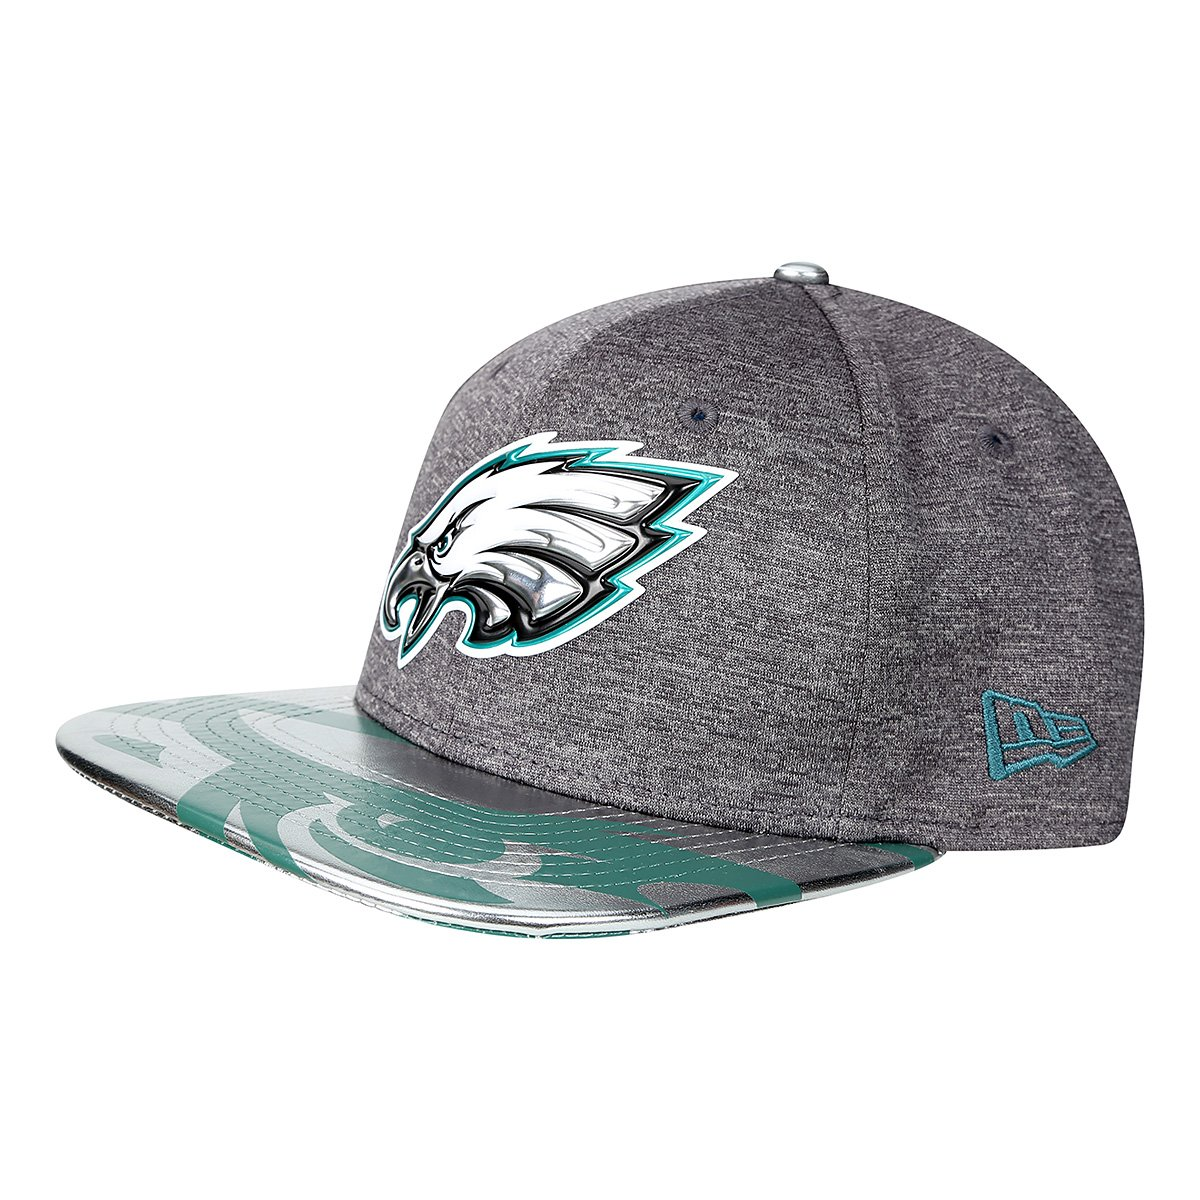 Boné New Era NFL Philadelphia Eagles Aba Reta 950 Original Fit Sn Spotlight  Masculino - Compre Agora  f97de9ab870